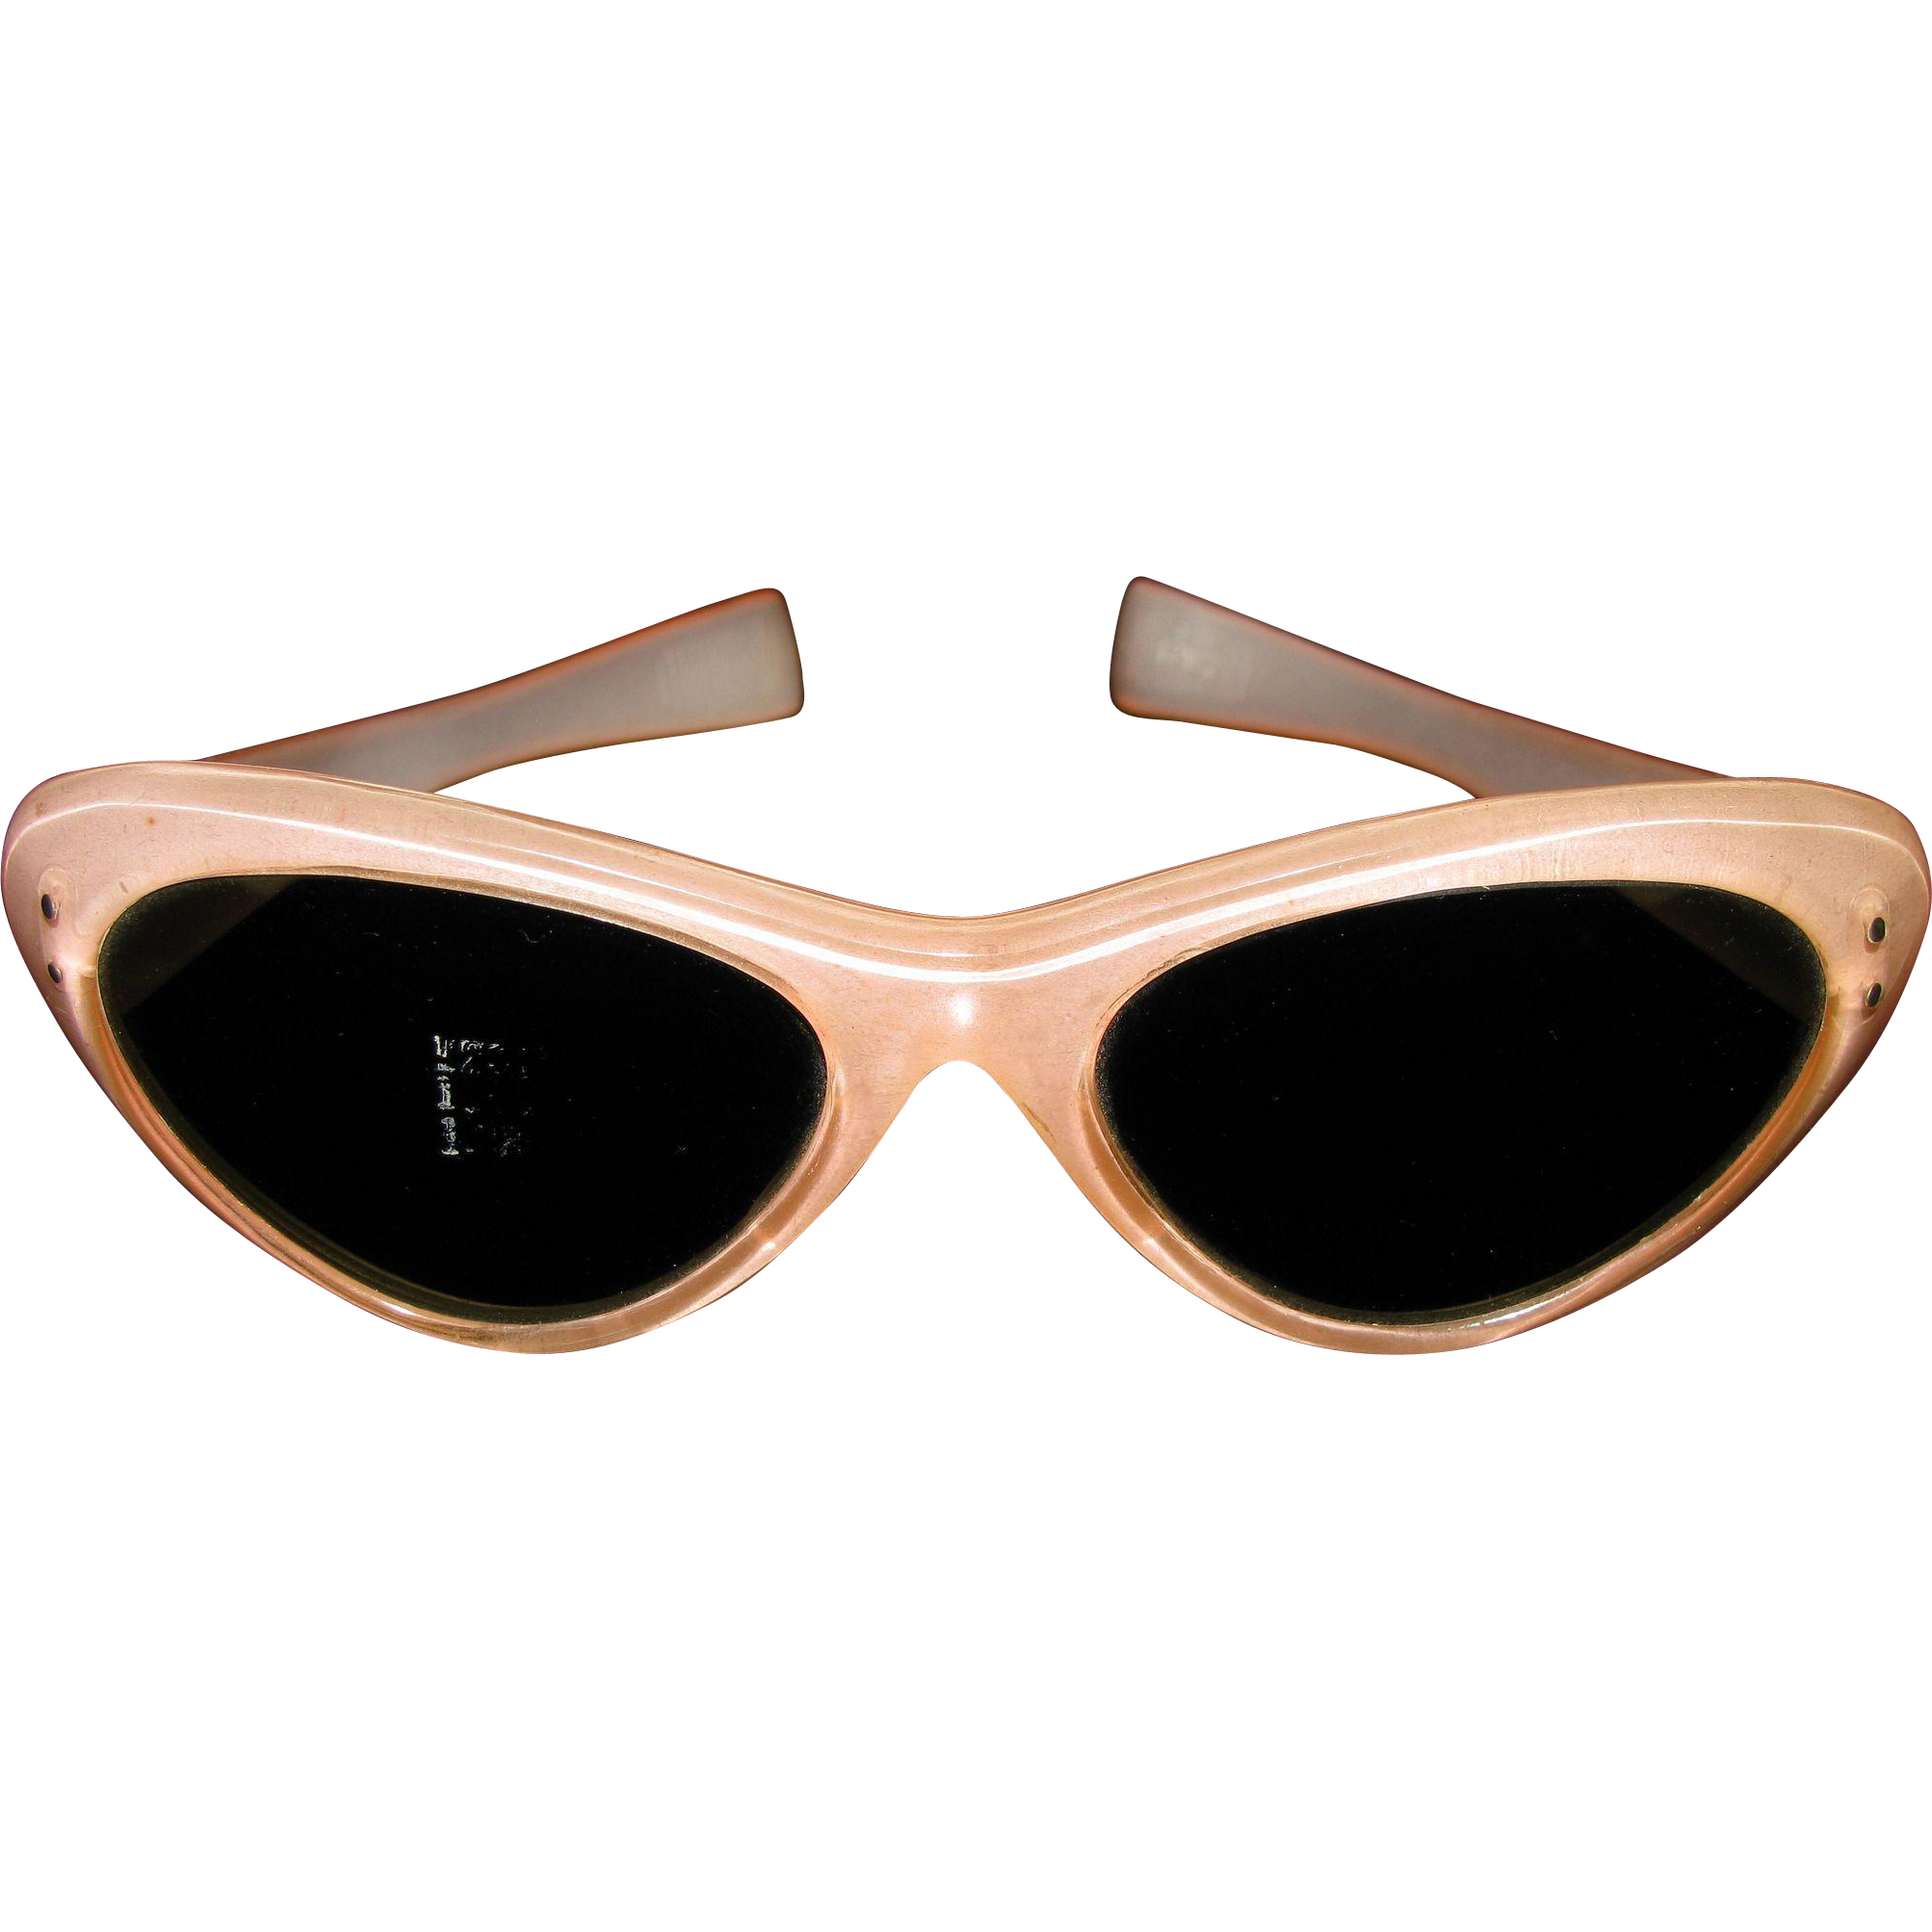 Original Vintage 1950s-60s Pink ladies Italian Cat Eye Sunglasses